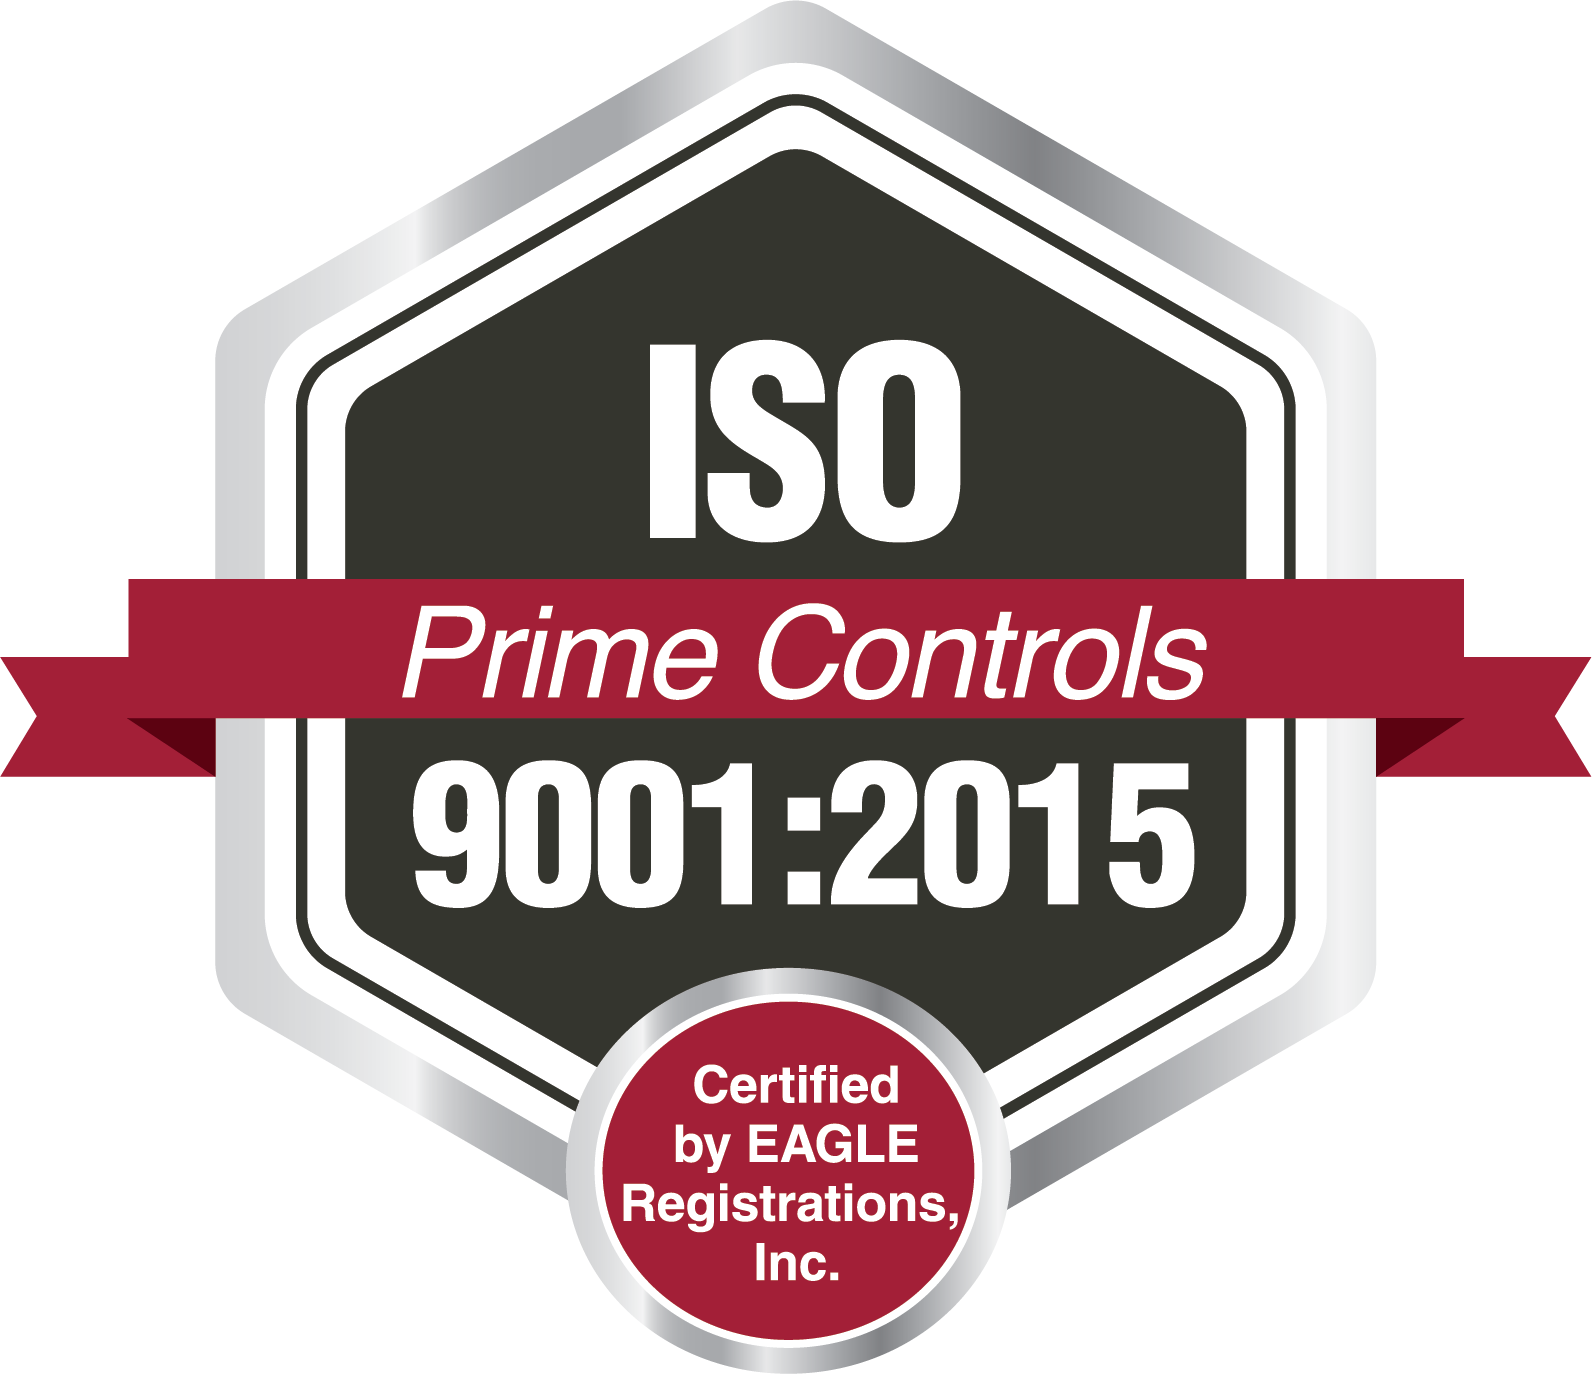 Prime Controls ISO Logo Certified by Eagle Registrations Inc